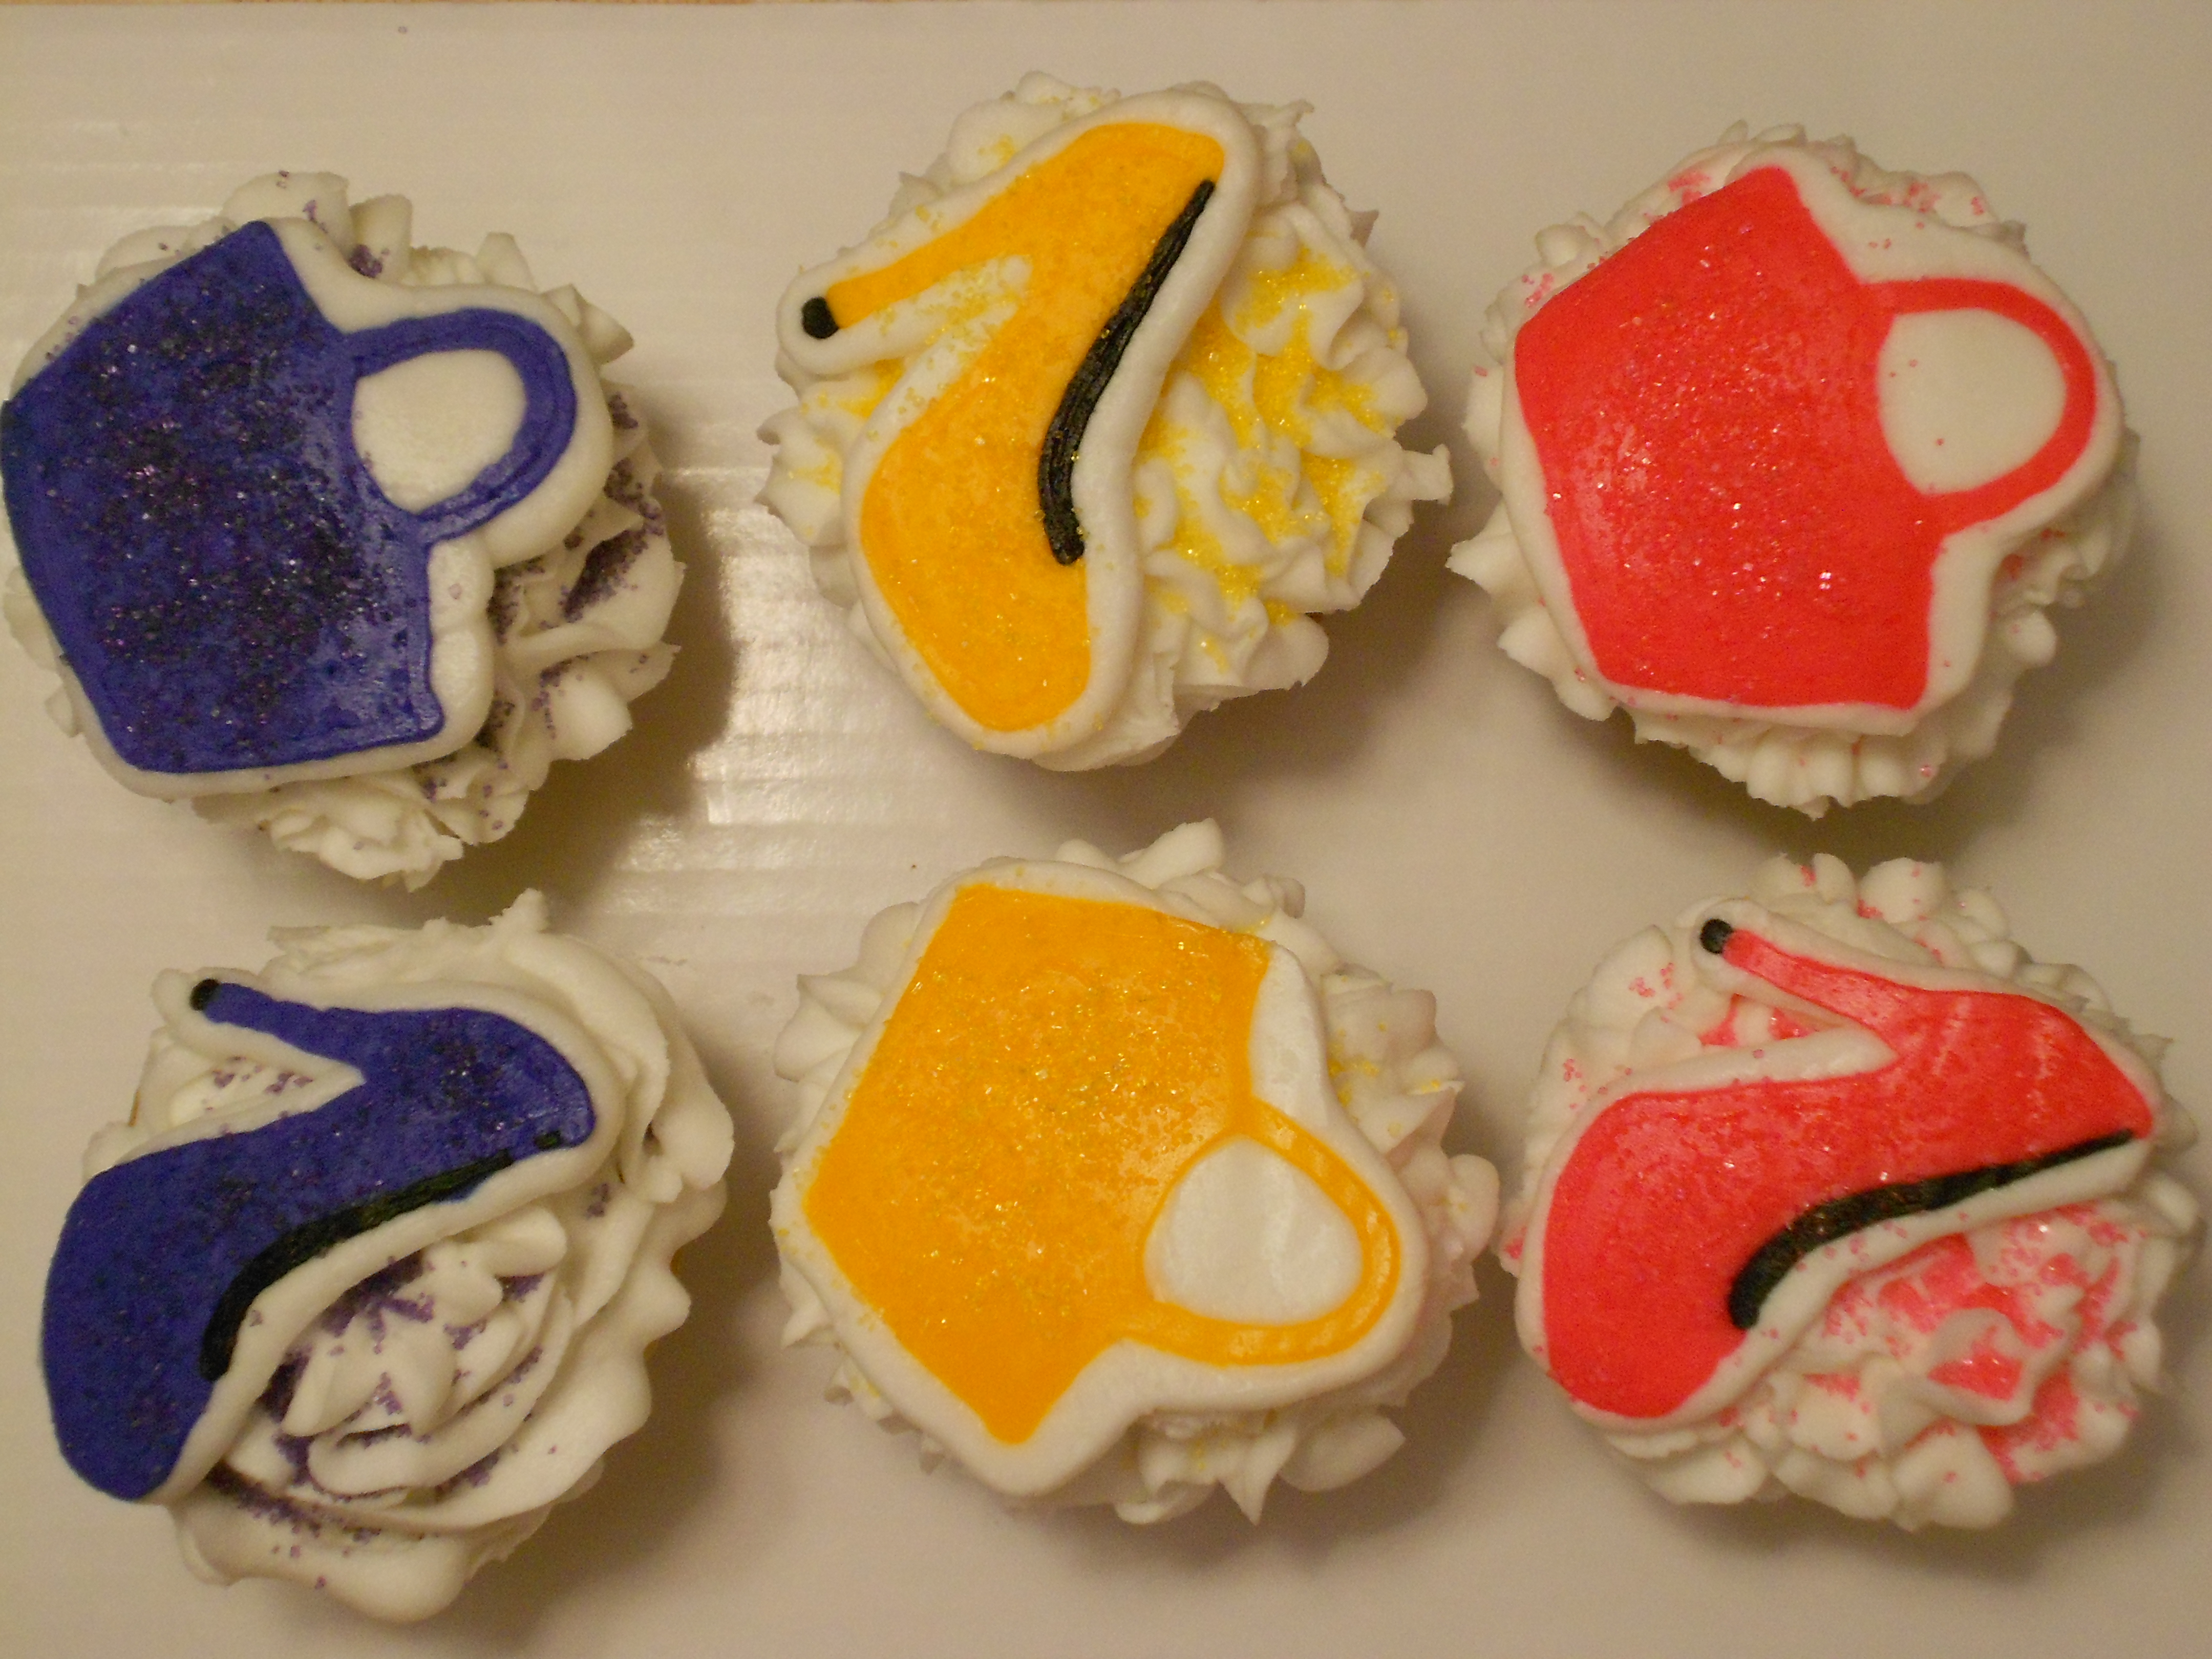 High Heel and matching purse cupcakes